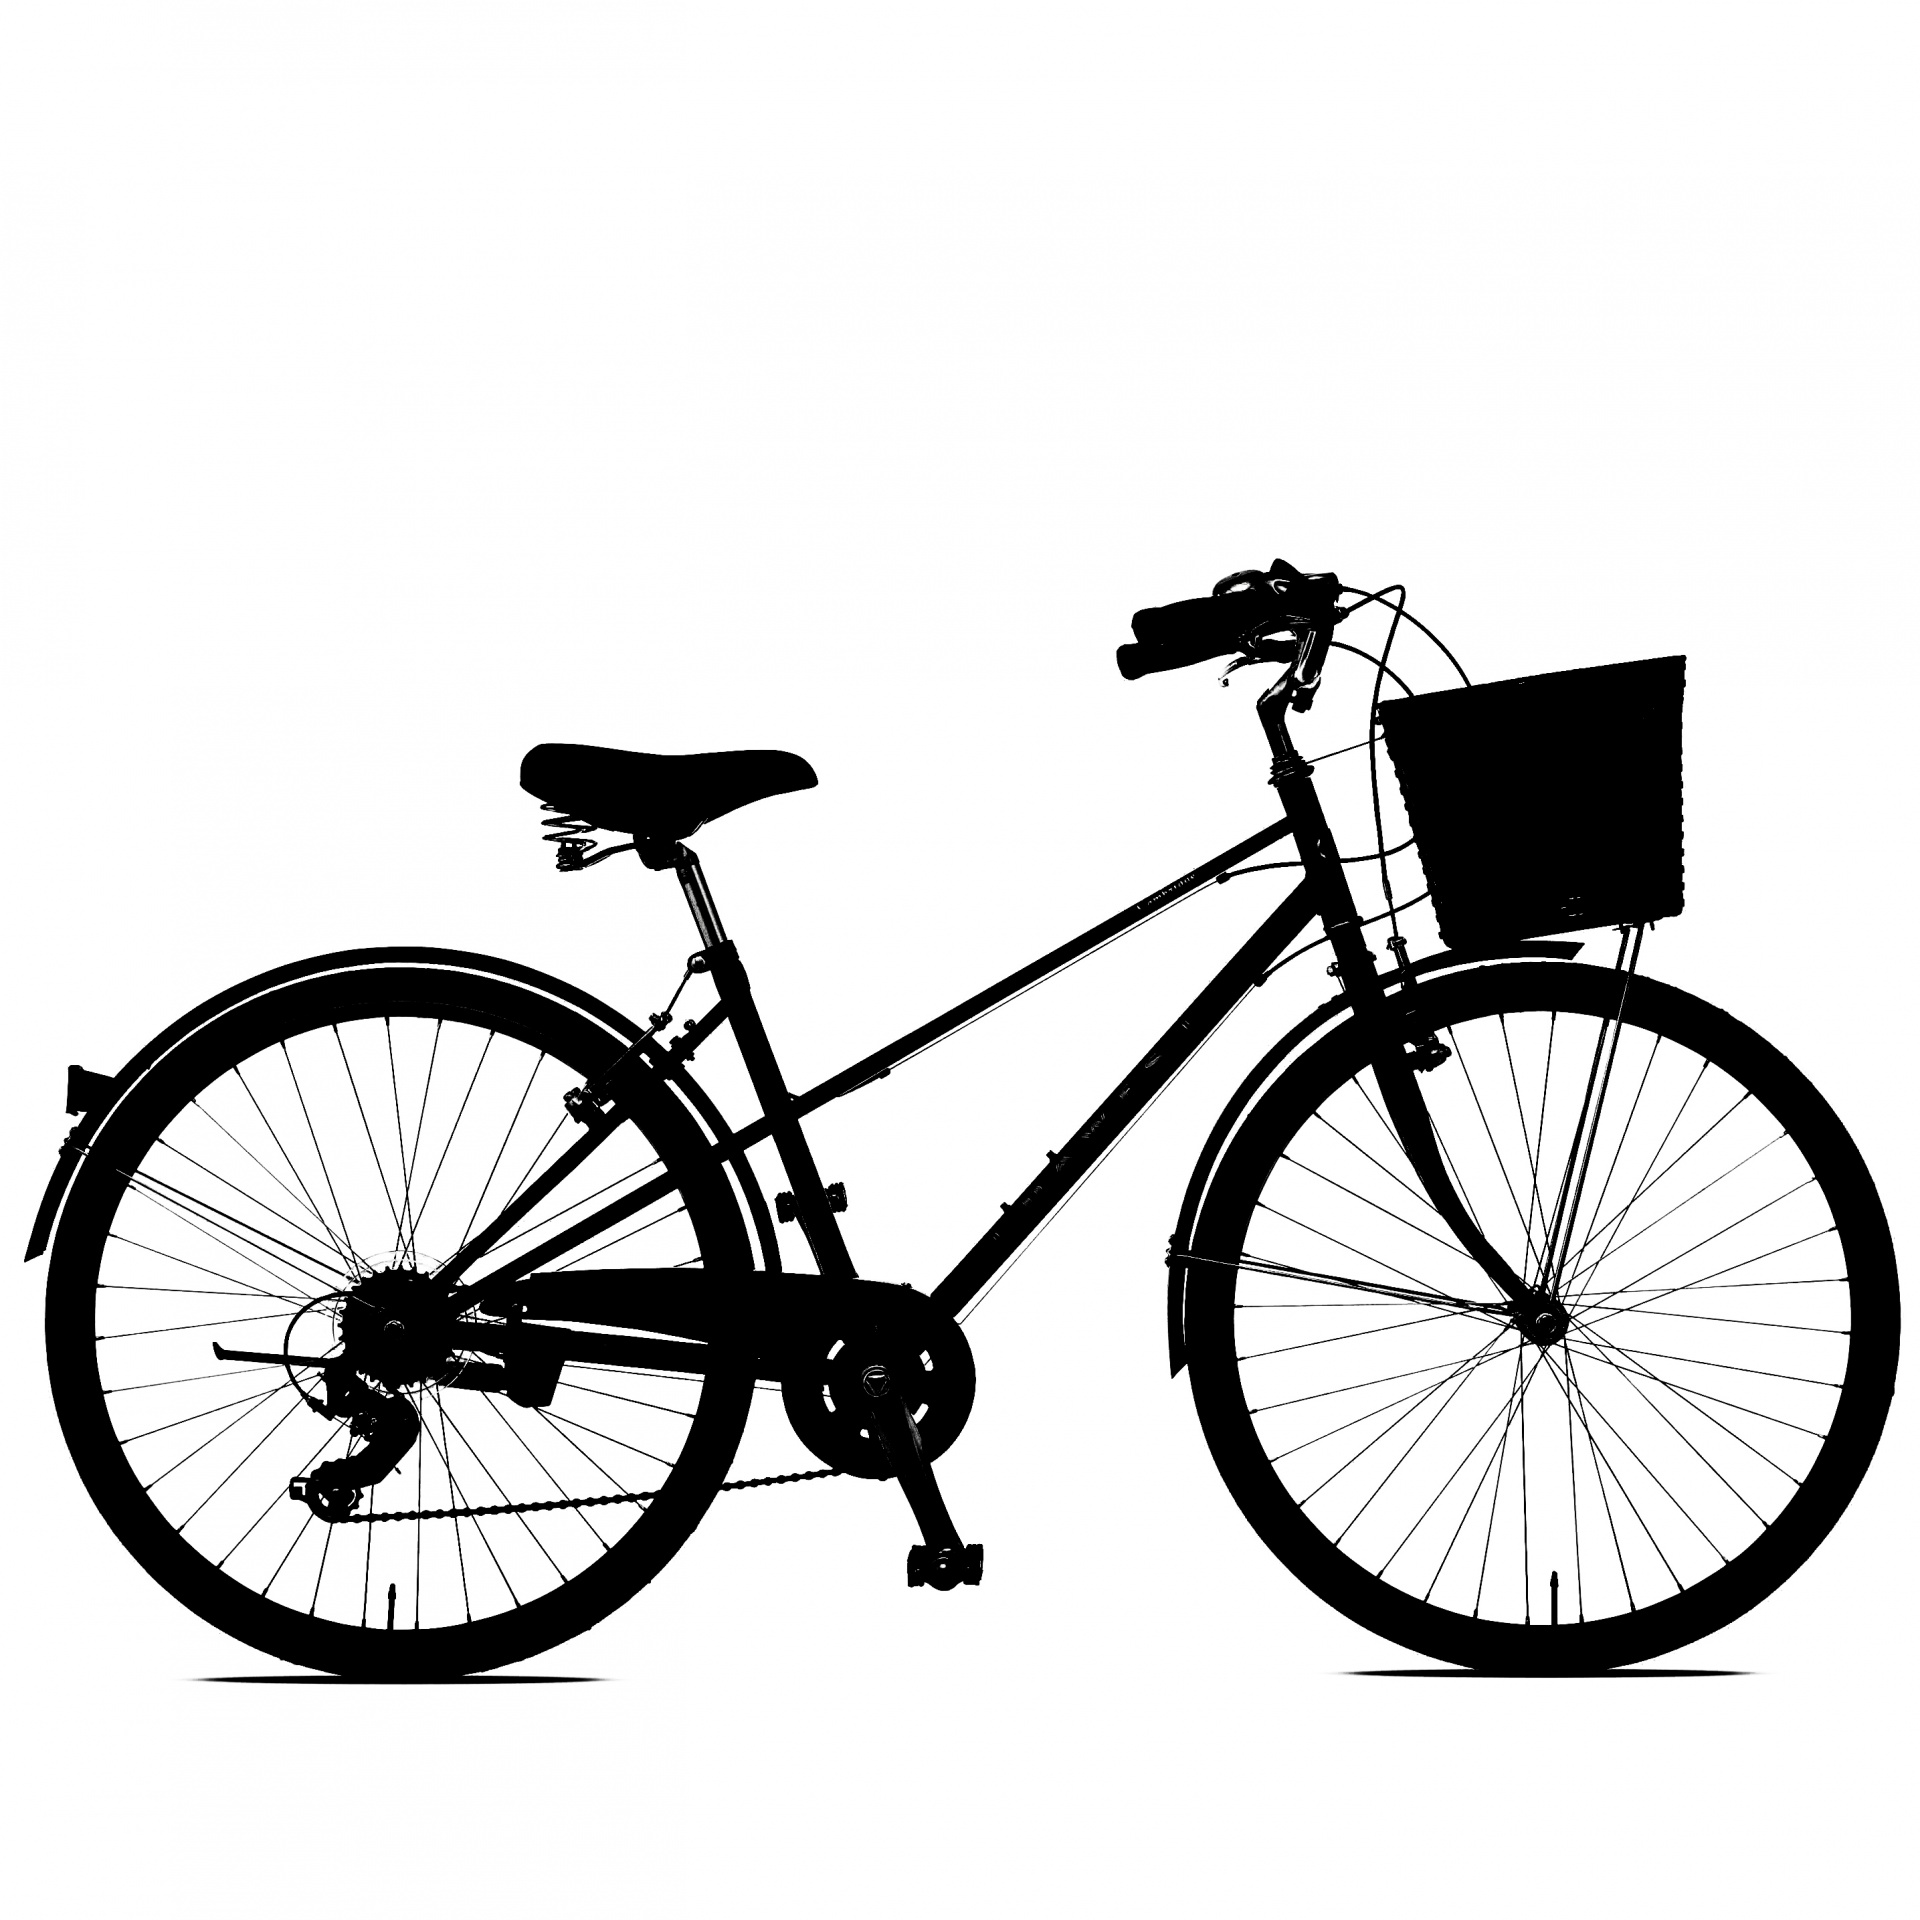 Biking clipart public domain. Bicycle free stock photo